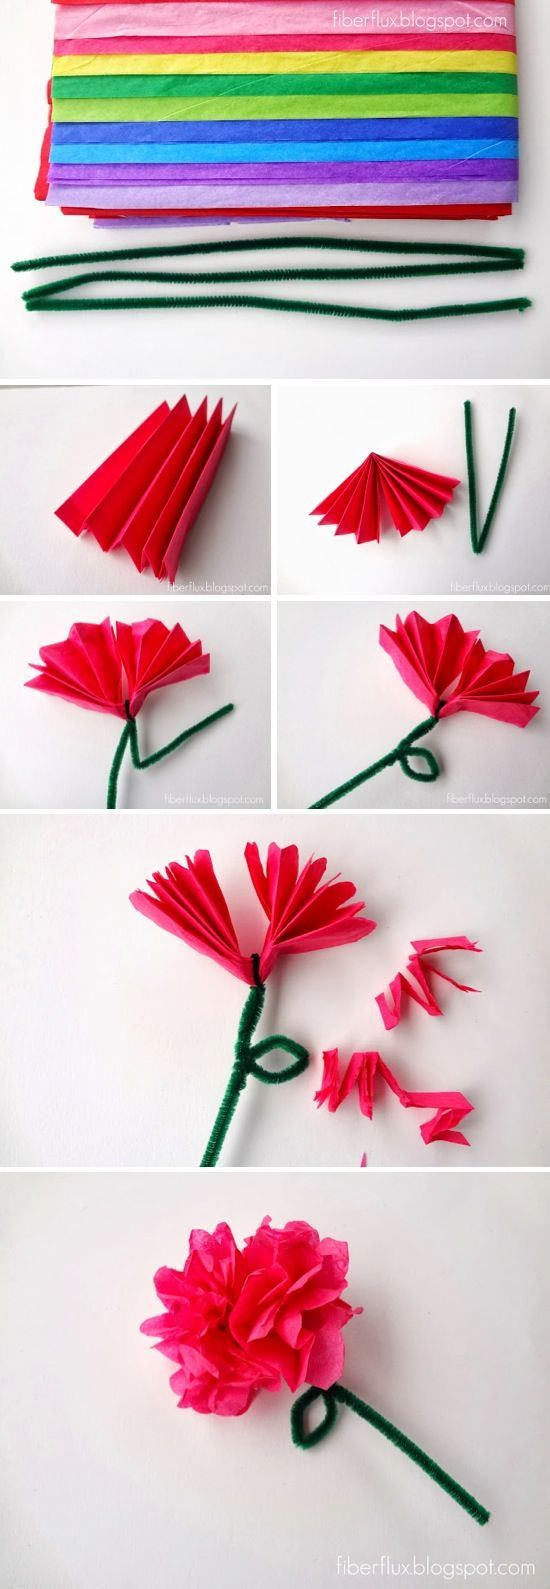 105 Best Ideas For The Classroom Images On Pinterest Crafts